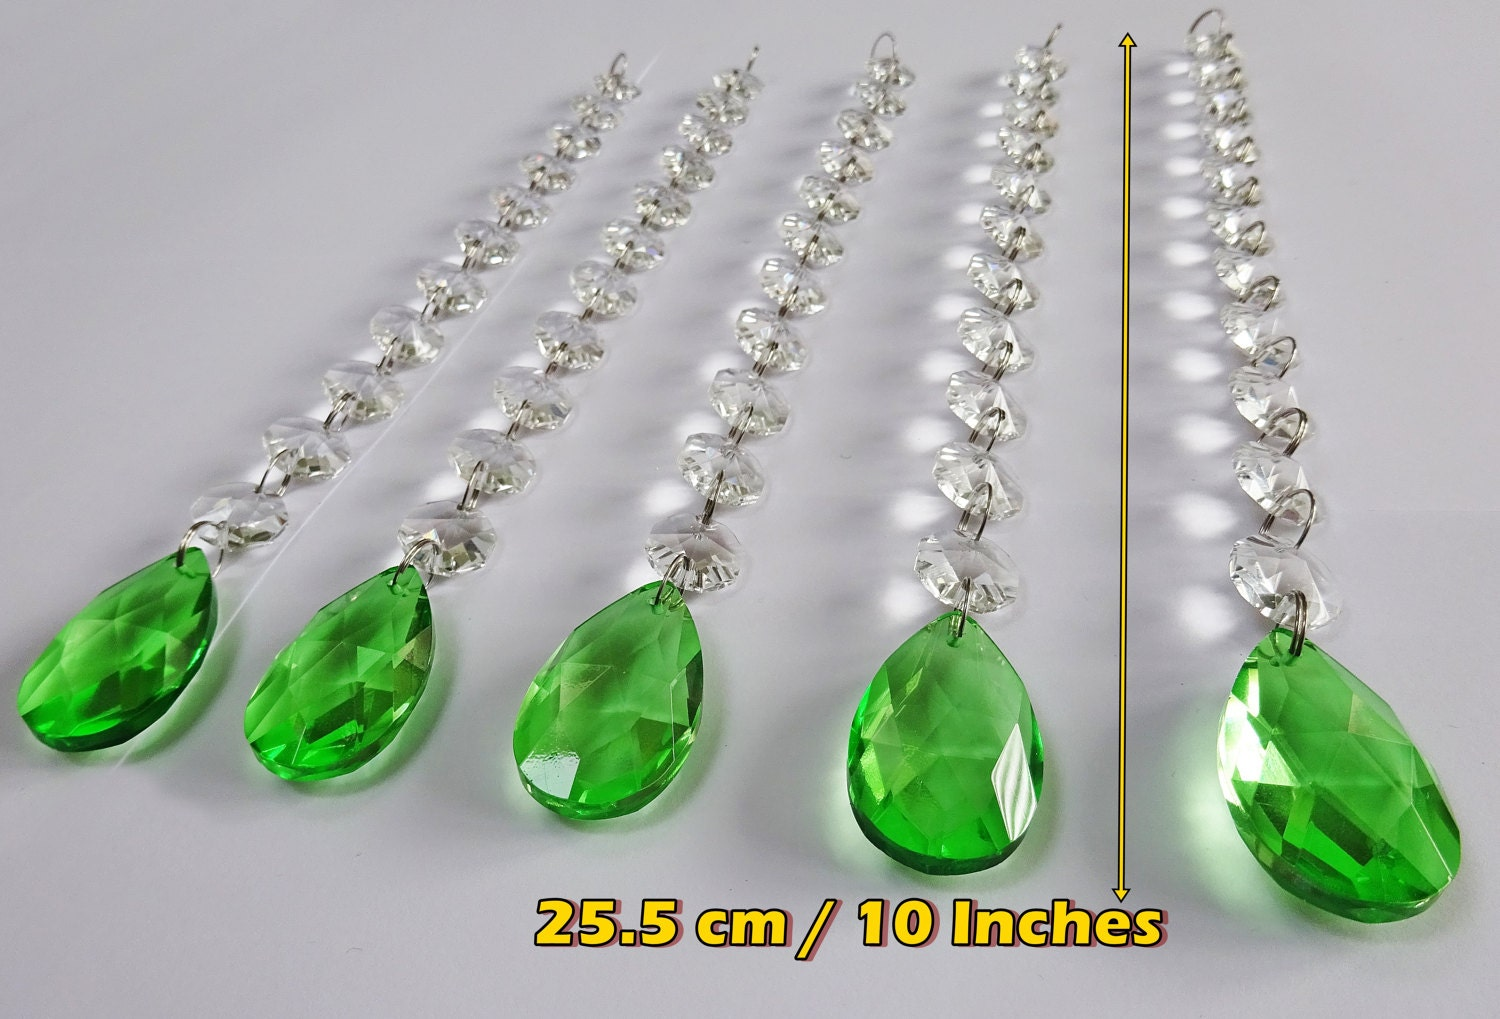 5 Hot Emerald Green Chandelier Drops Glass Crystals Droplets Oval ...